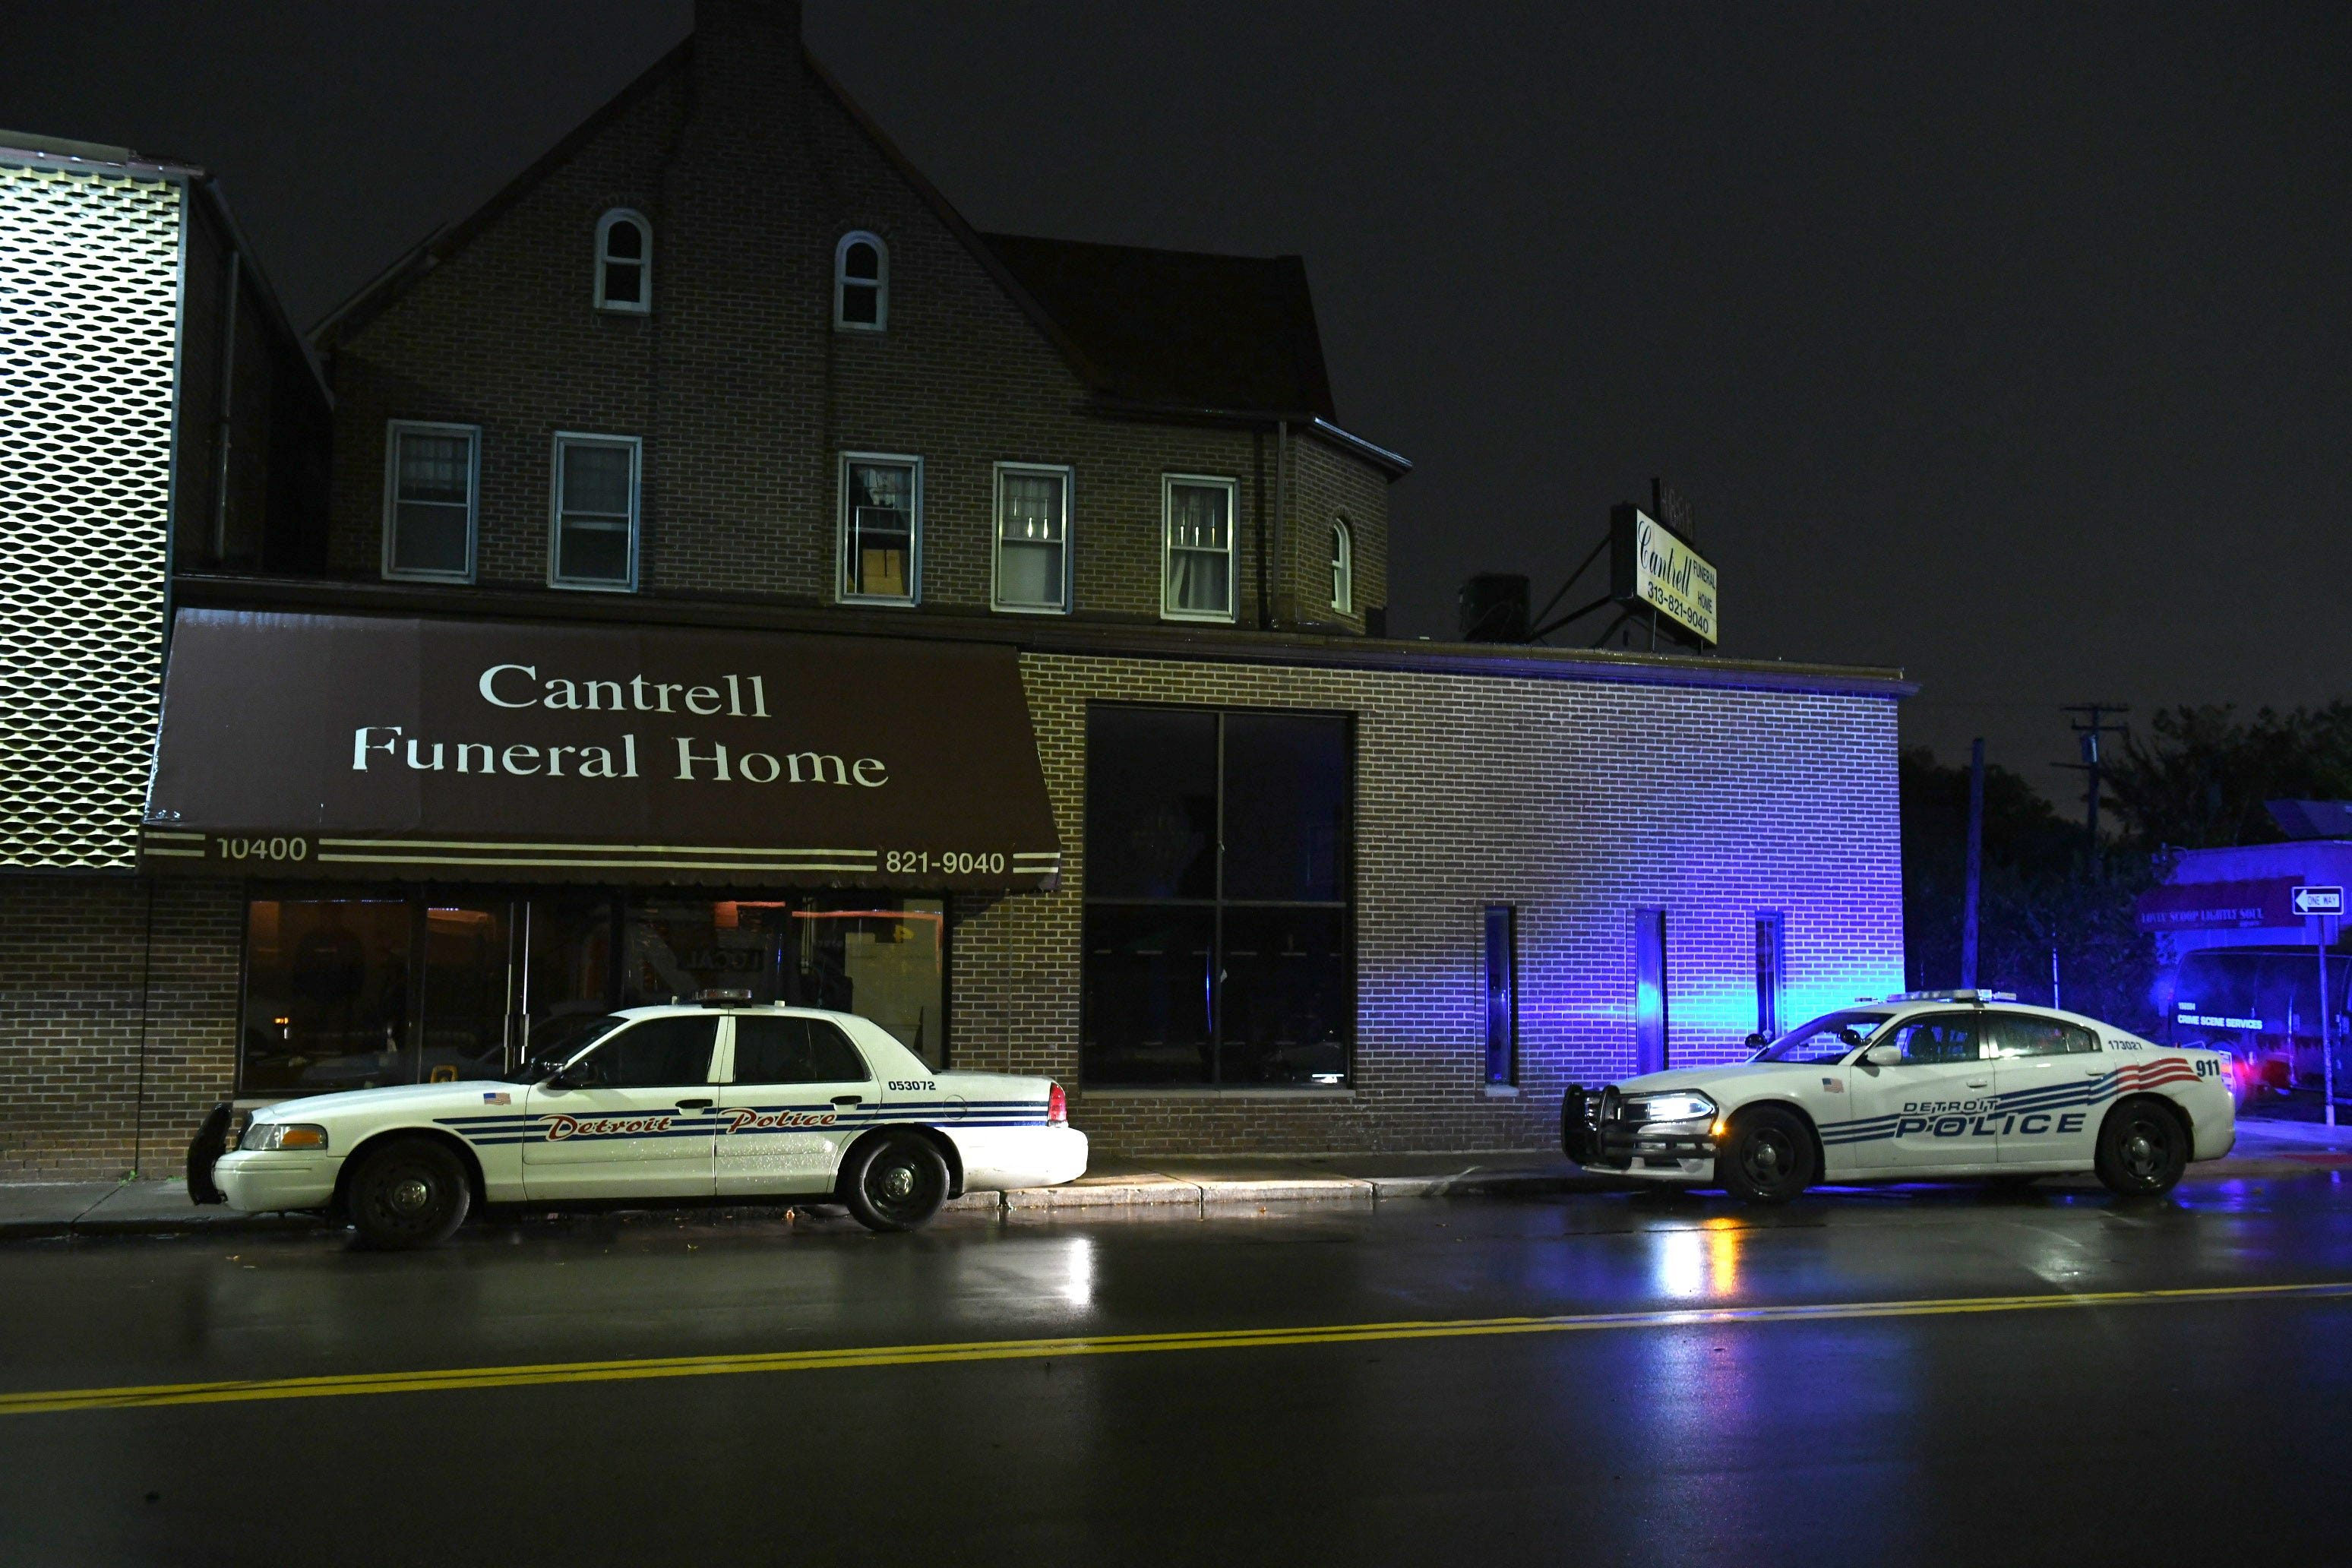 Detroit police vehicles seen parked outside the now-vacant Cantrell Funeral Home.